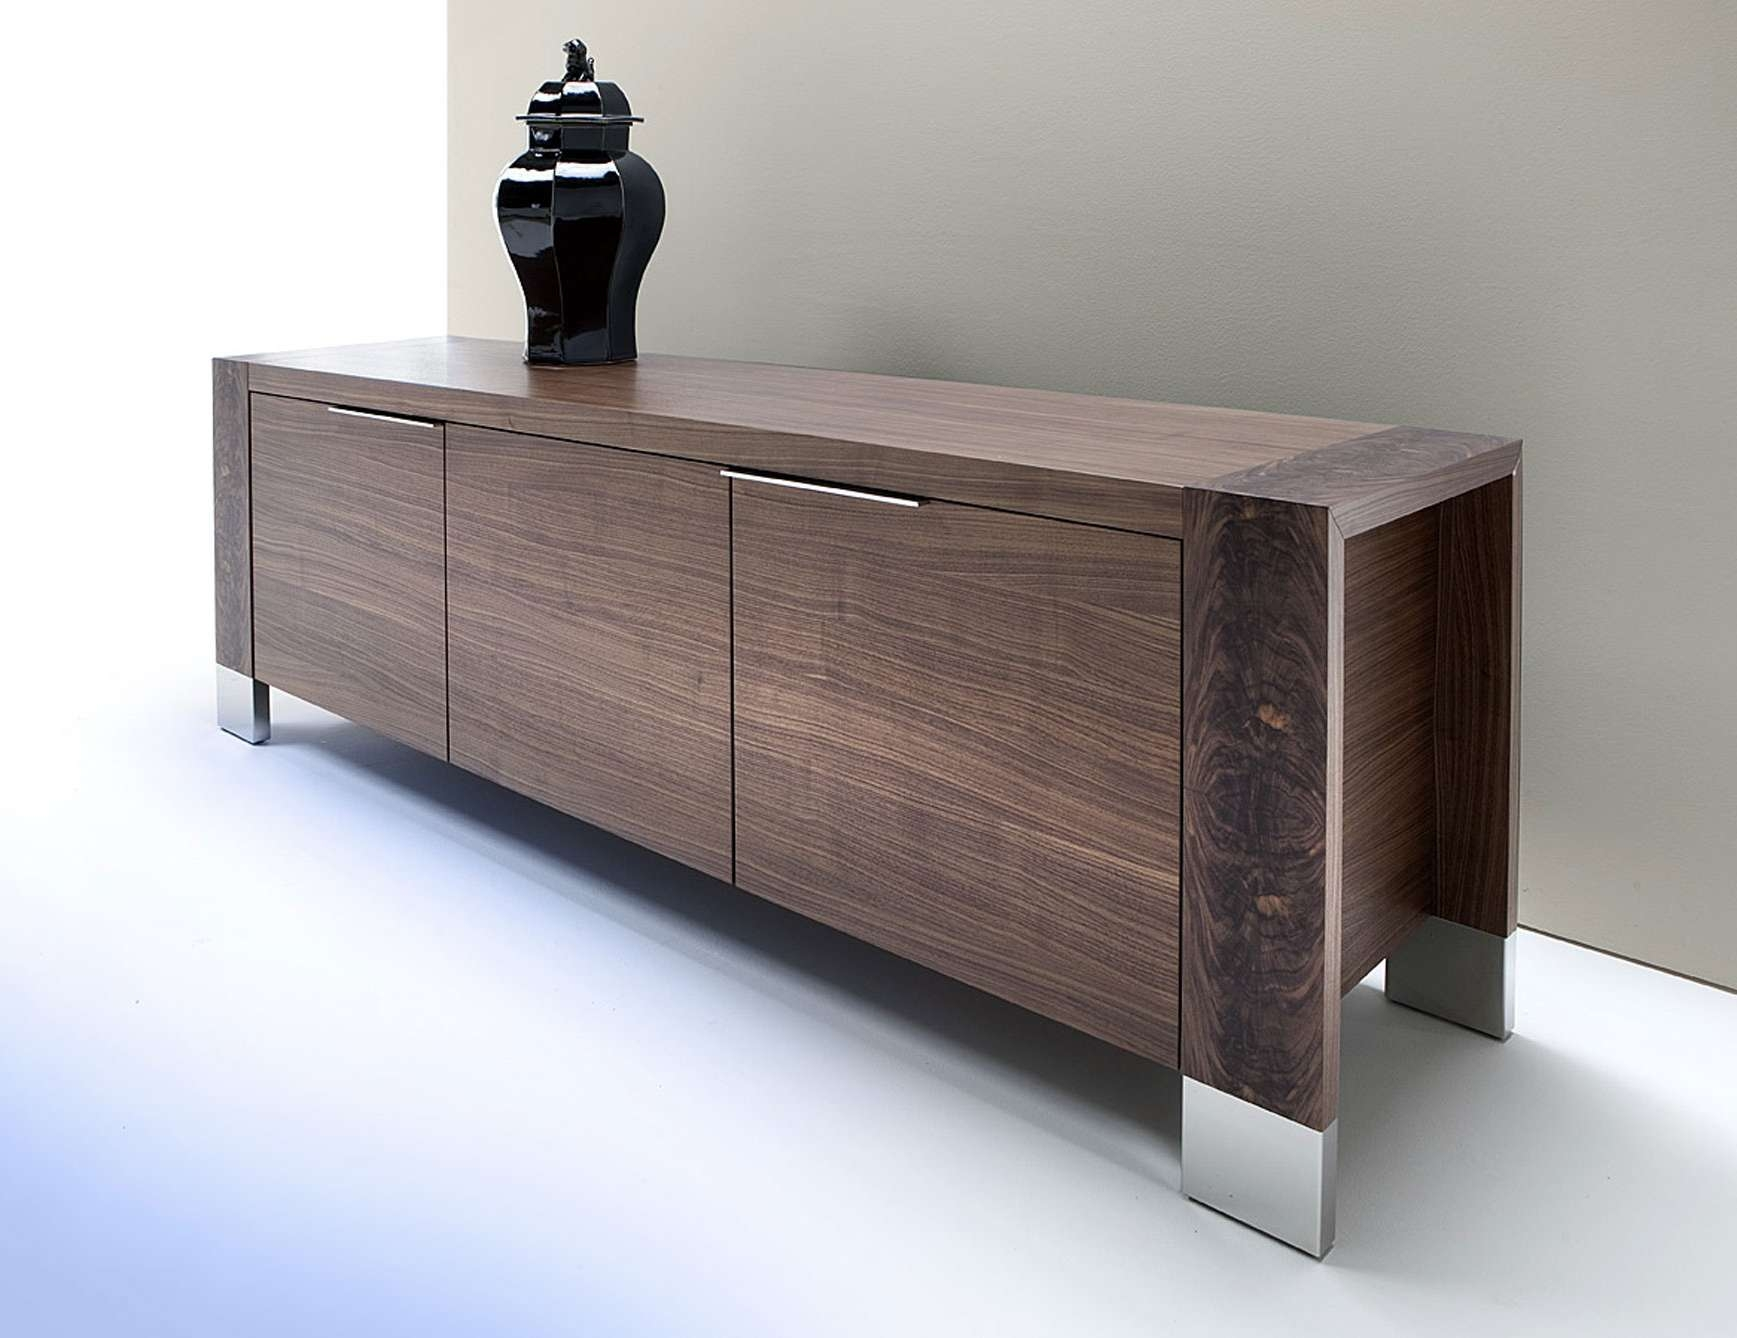 Costantini | Glas Italia | Credenzas / Sideboards Furniture Within Magic The Gathering Sideboards (View 12 of 24)